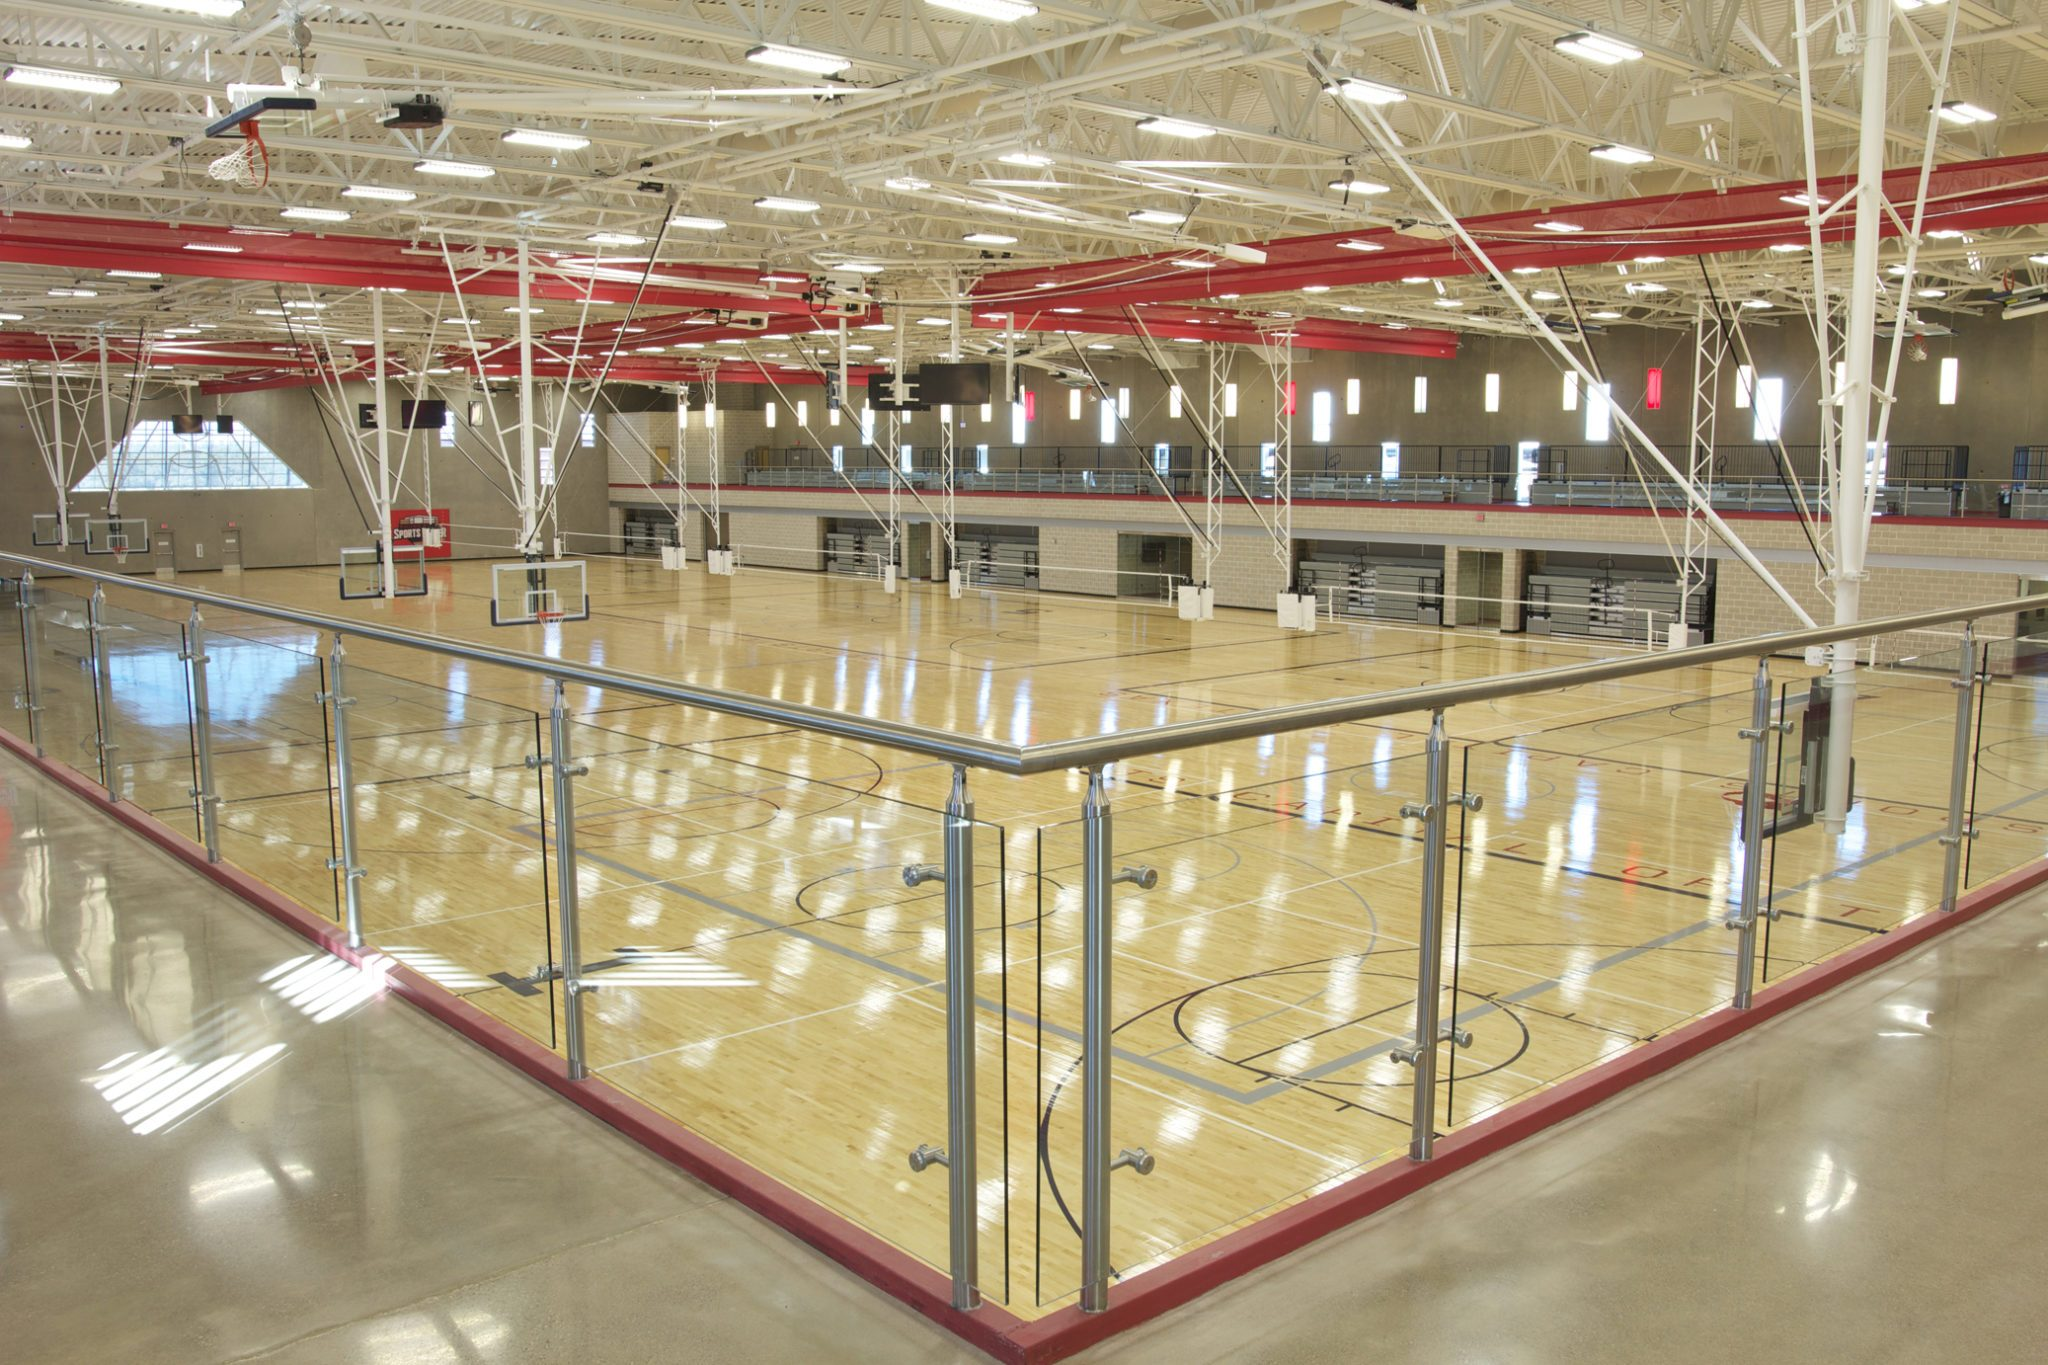 Recreation Center with Basketball Courts and Volleyball Nets